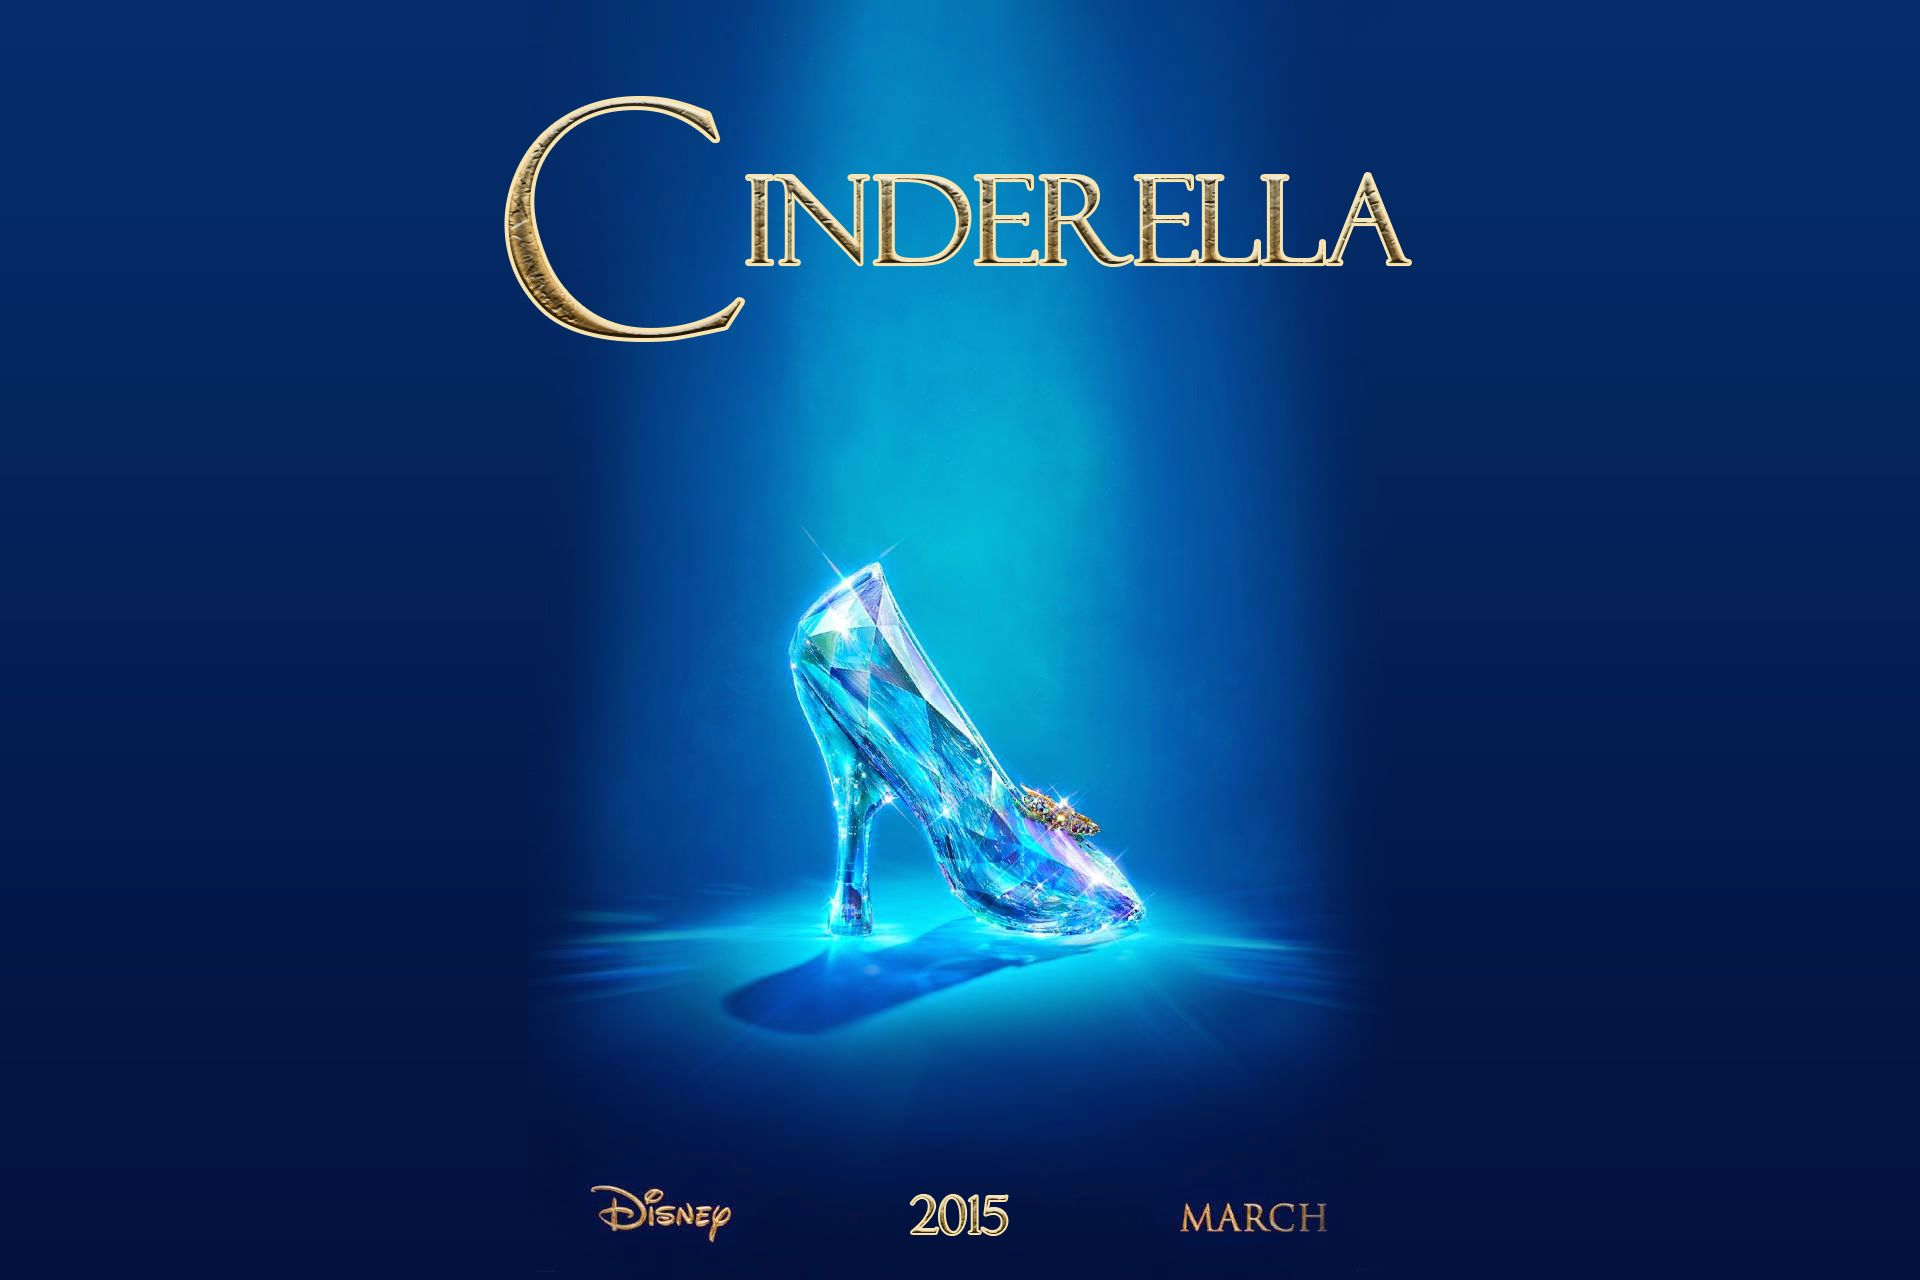 Cute Wallpapers On Computer 14 Hd Cinderella Movie Wallpapers